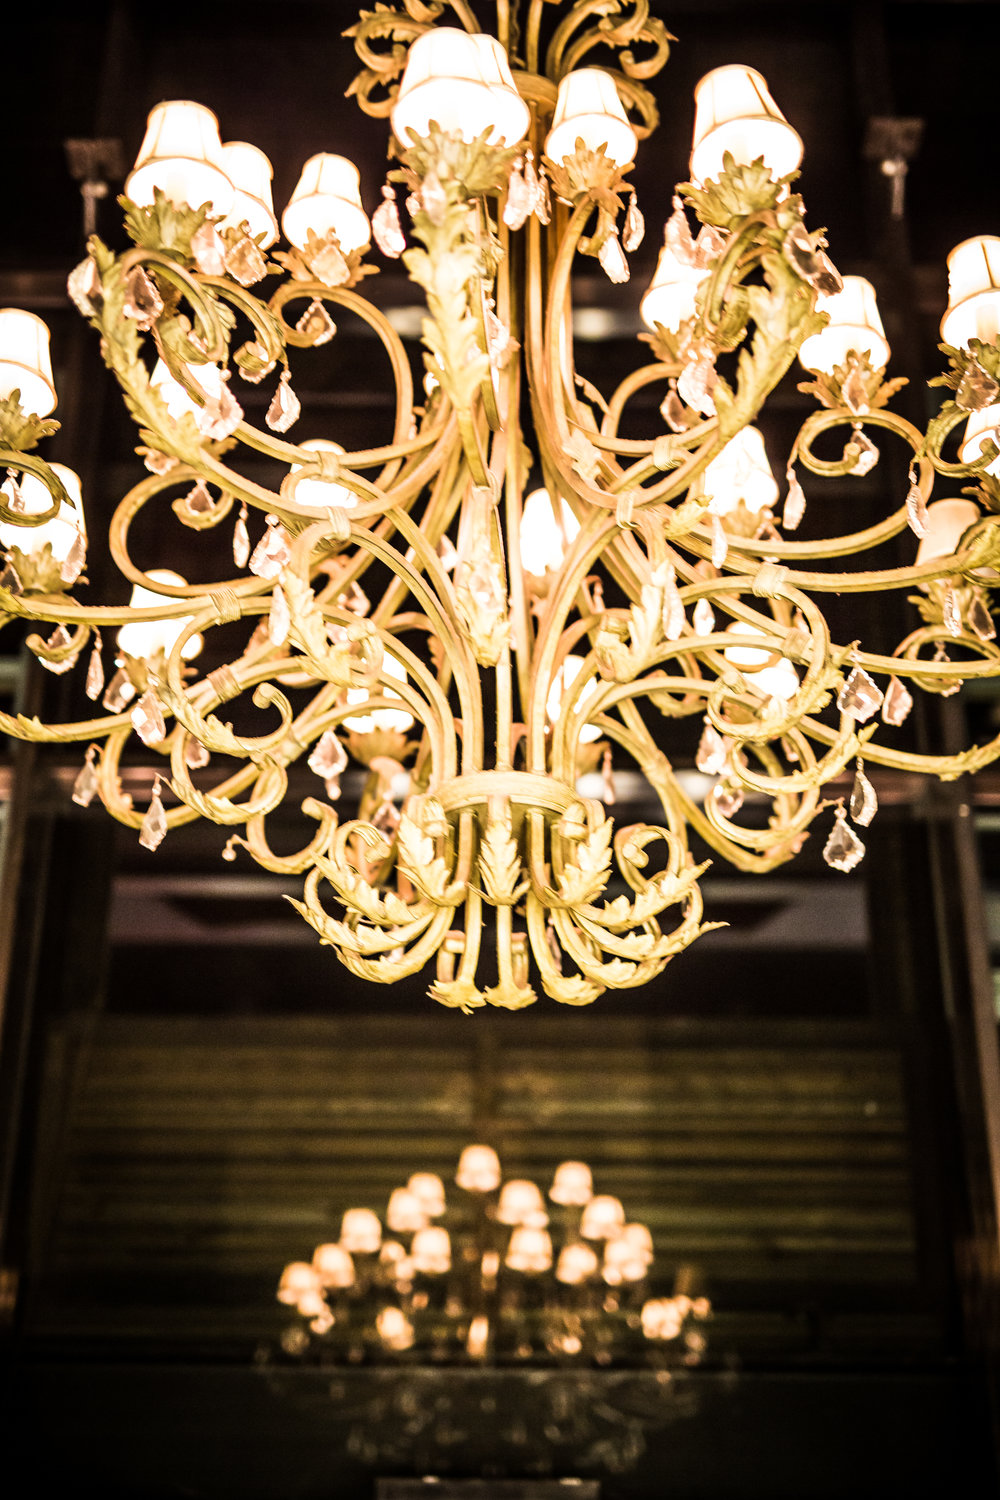 Dinner or Dancing under the chandelier?